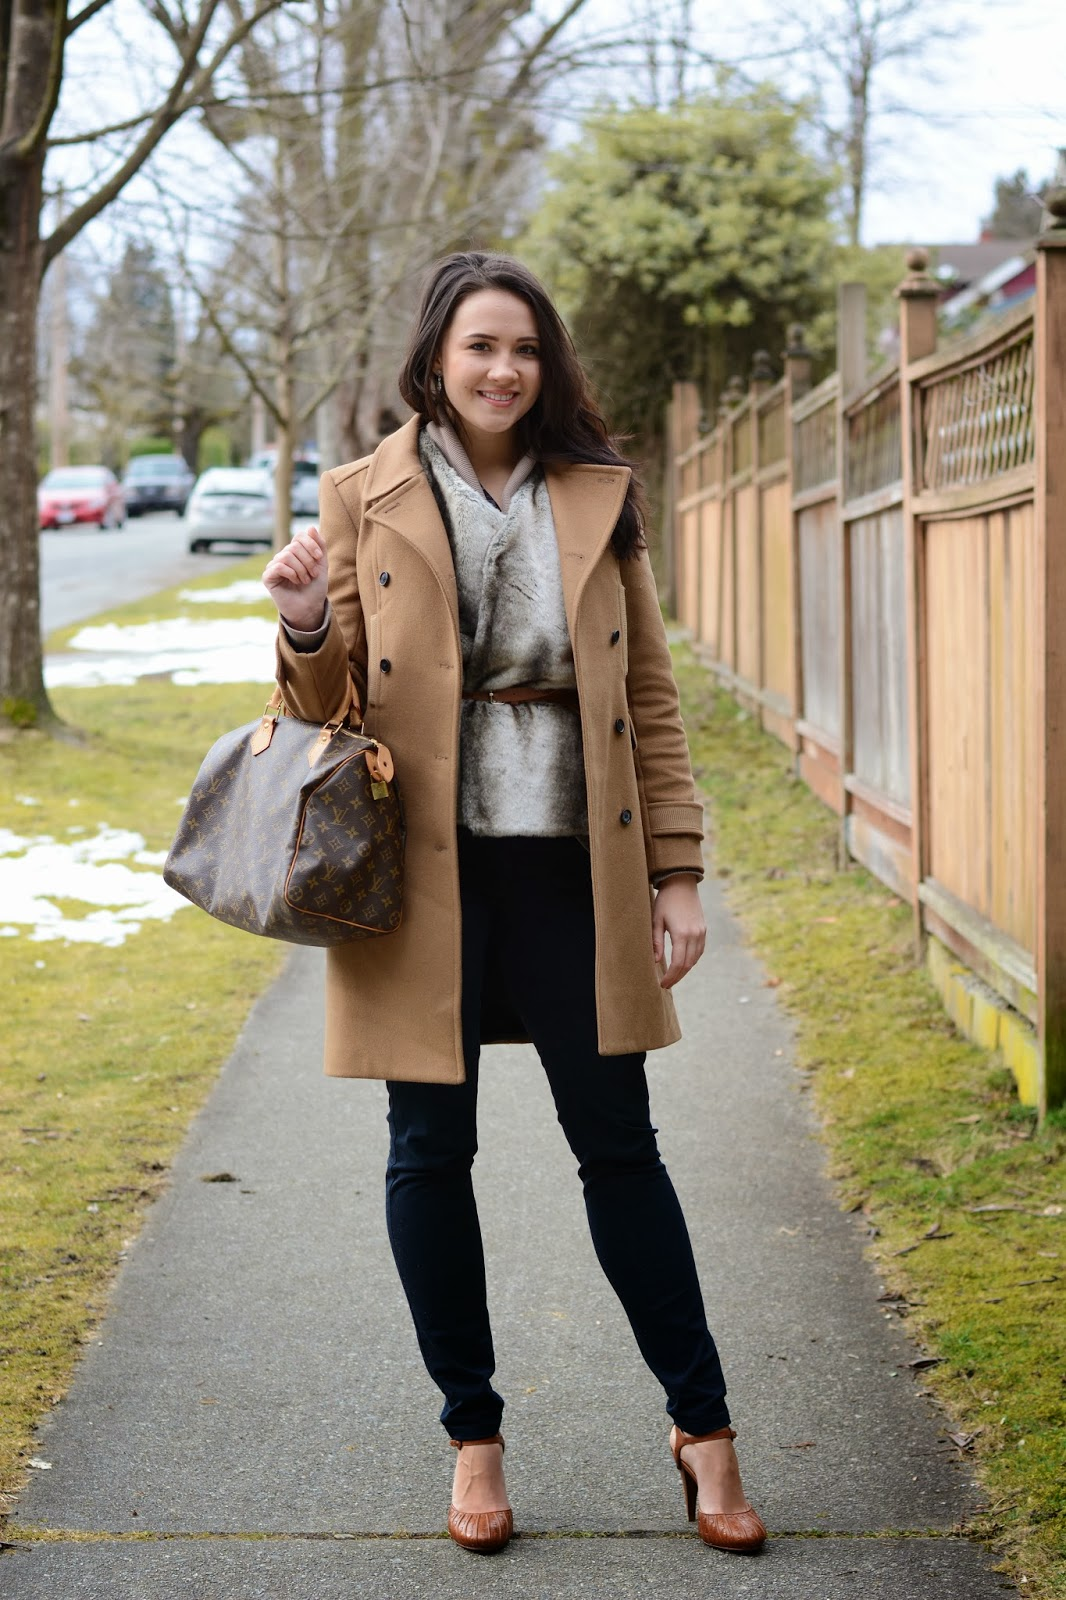 The Broken Stiletto vancouver style blog, vancouver fashion blog, vancouver fashion, vancouver style, canadian fashion blog, ana parfenova,Wilfred camel coat, faux fur thrifted vest, vest under coat, wilfred sweater, jacob pants, Cole Haan heels, Louis Vuitton Speedy 35 bag